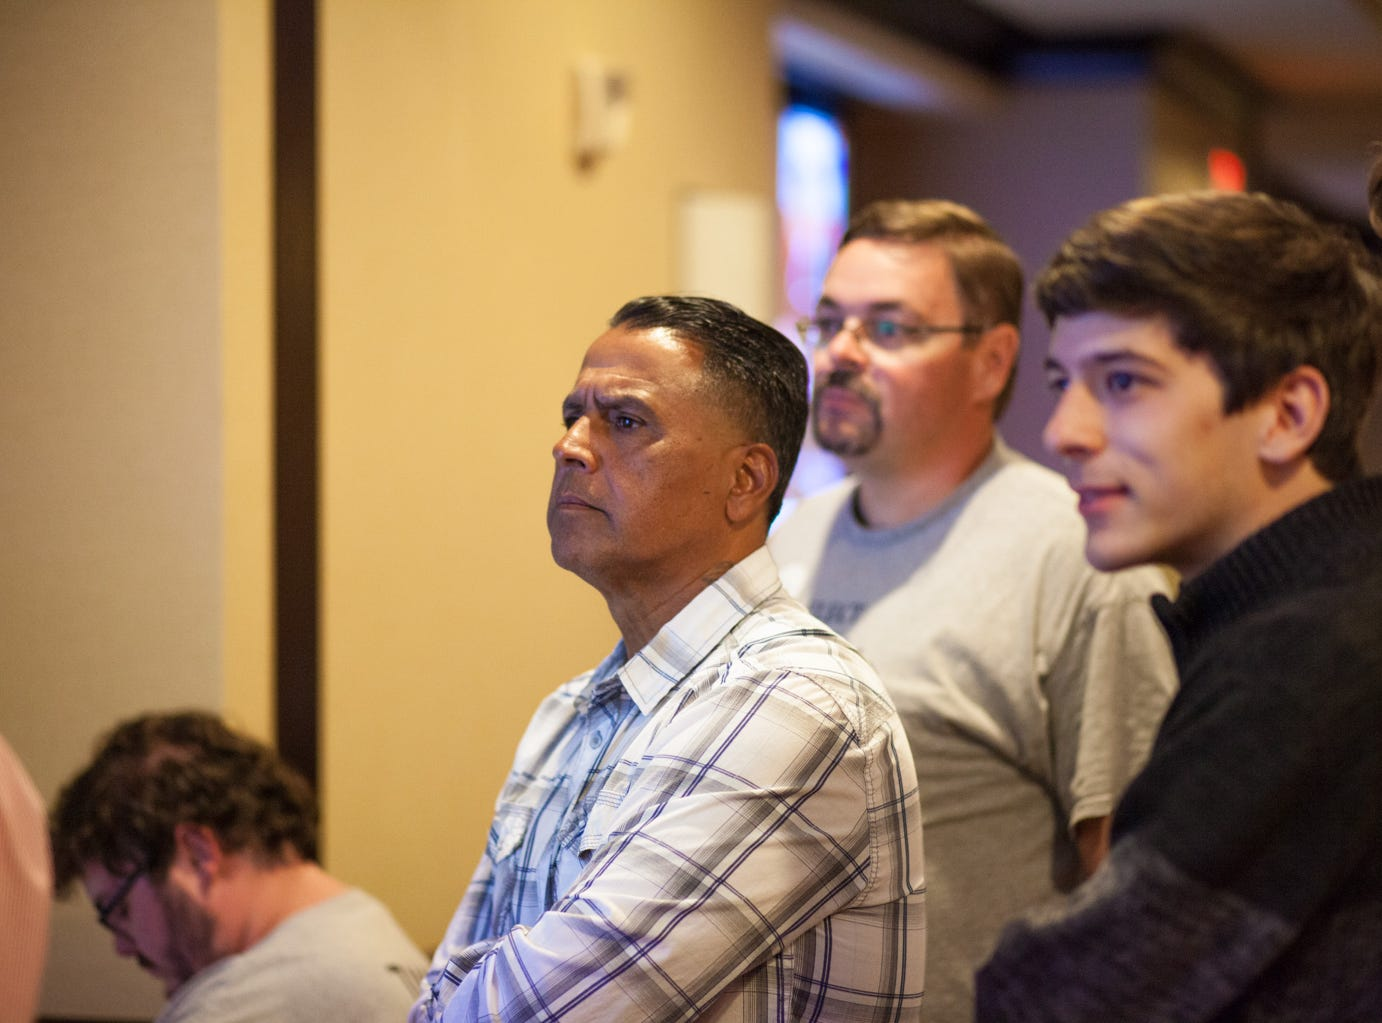 State House District 67 Candidate Tommy Vallejos watches with supporters as results come in at the watch party on Tuesday.